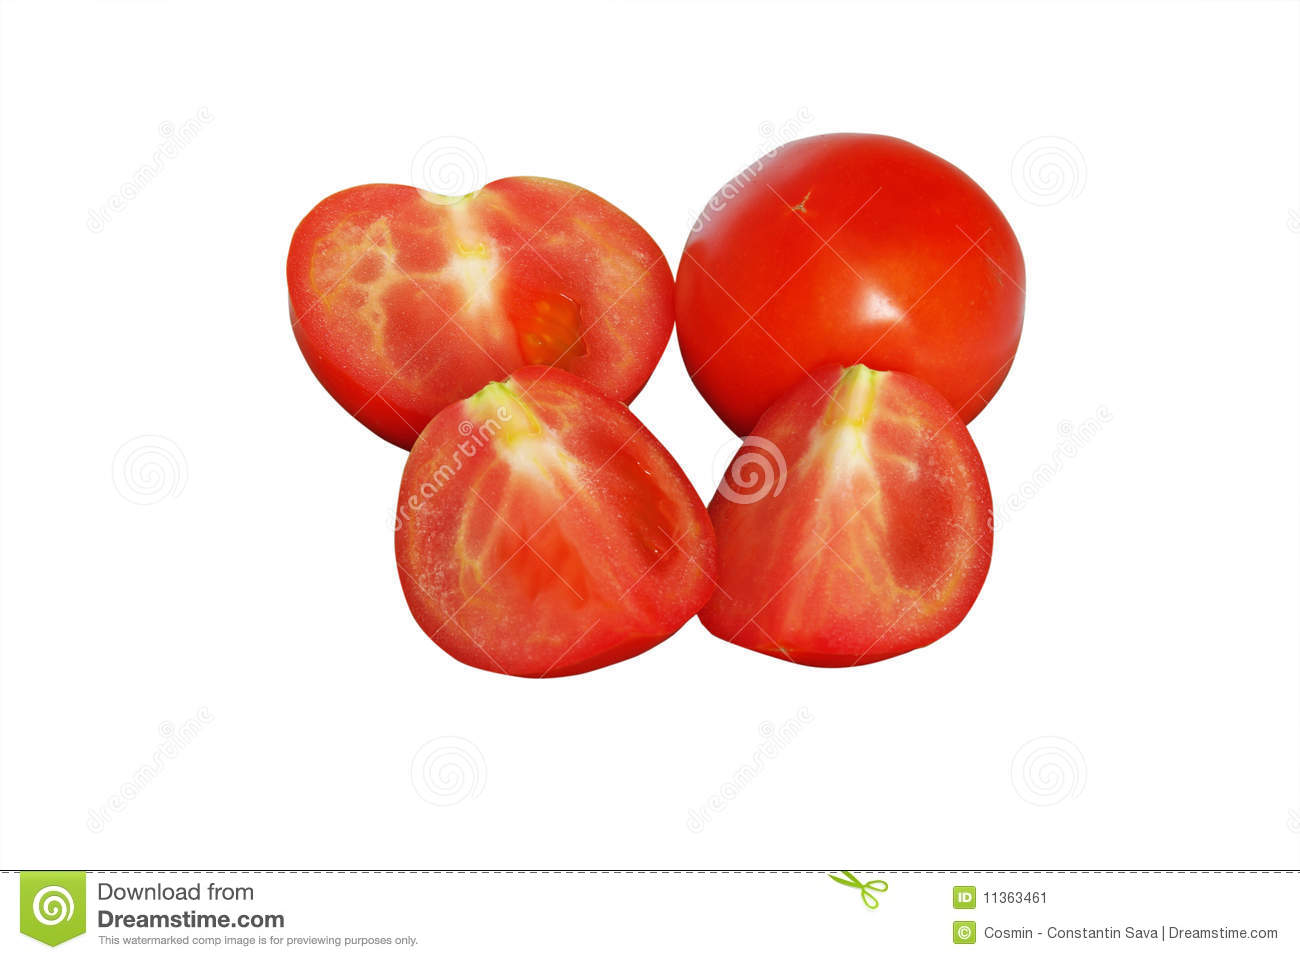 how to properly cut a tomato